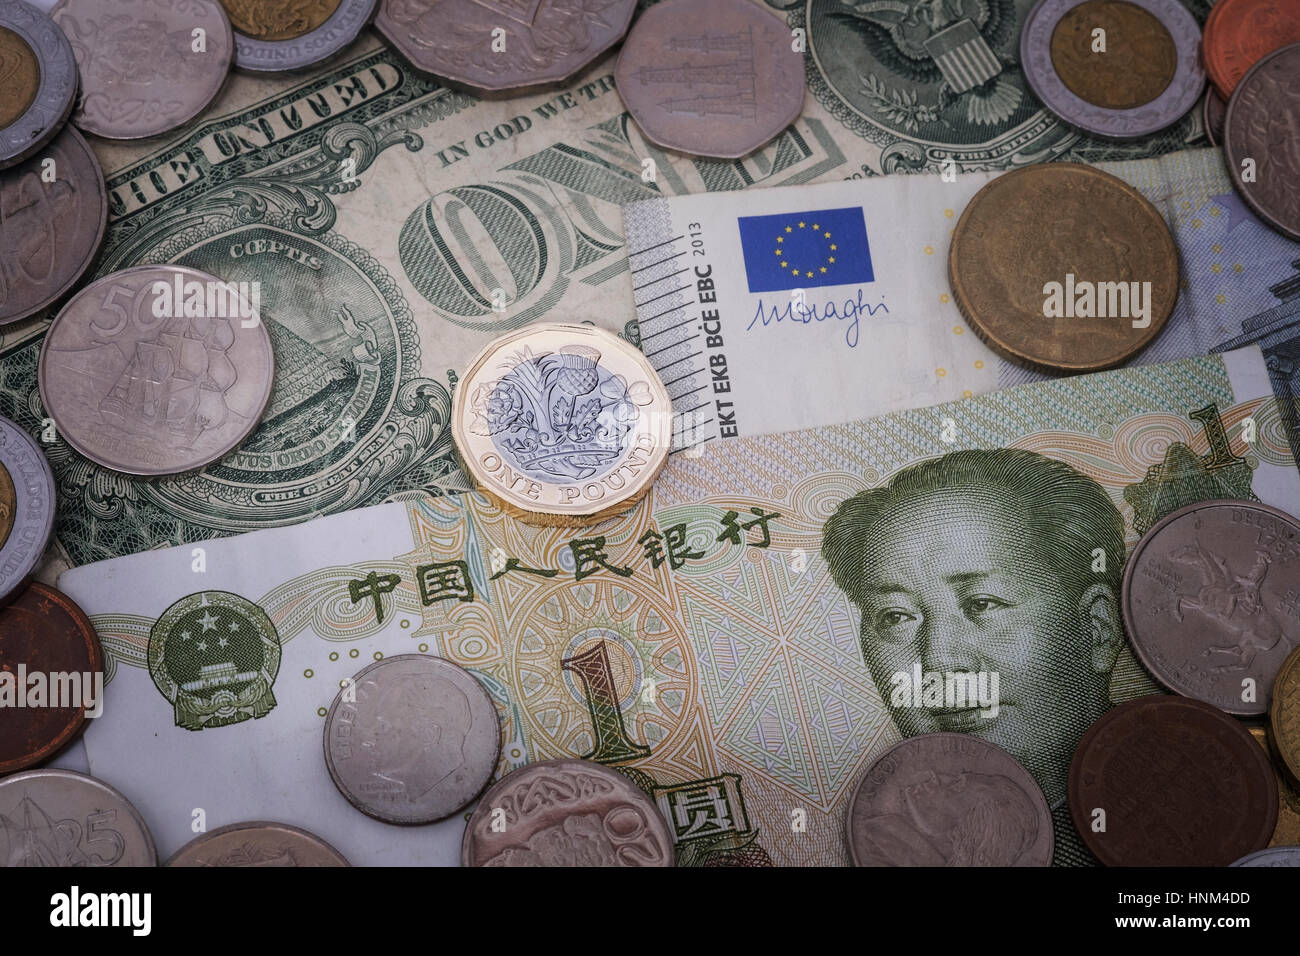 British pound coin against background of currencies including yuan, dollar, and euro - Stock Image